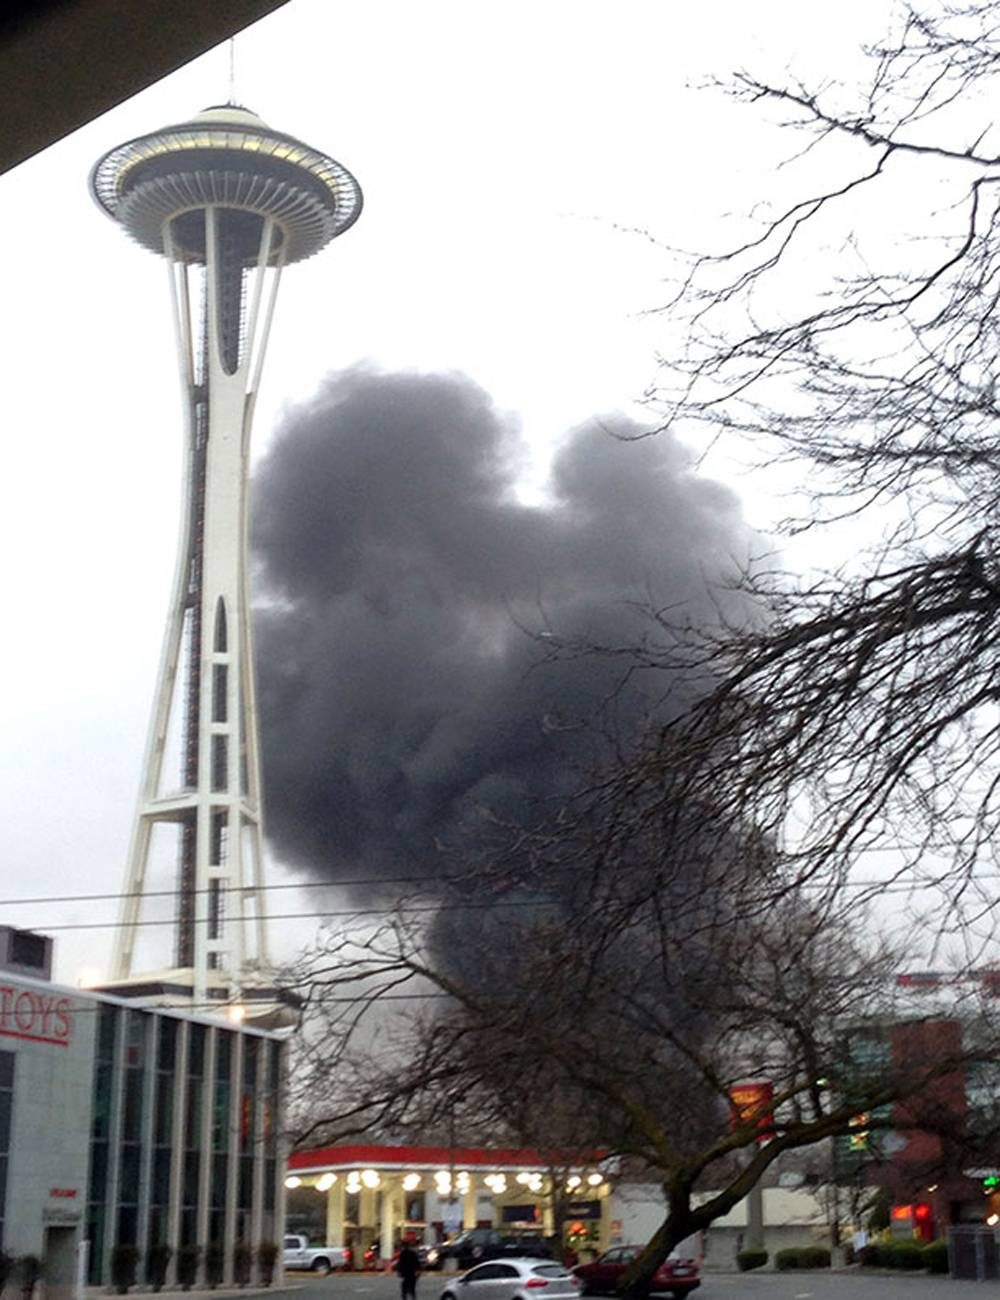 Smoke rises at the scene of a helicopter crash outside the KOMO-TV studios near the space needle in Seattle on Tuesday, March 18, 2014.